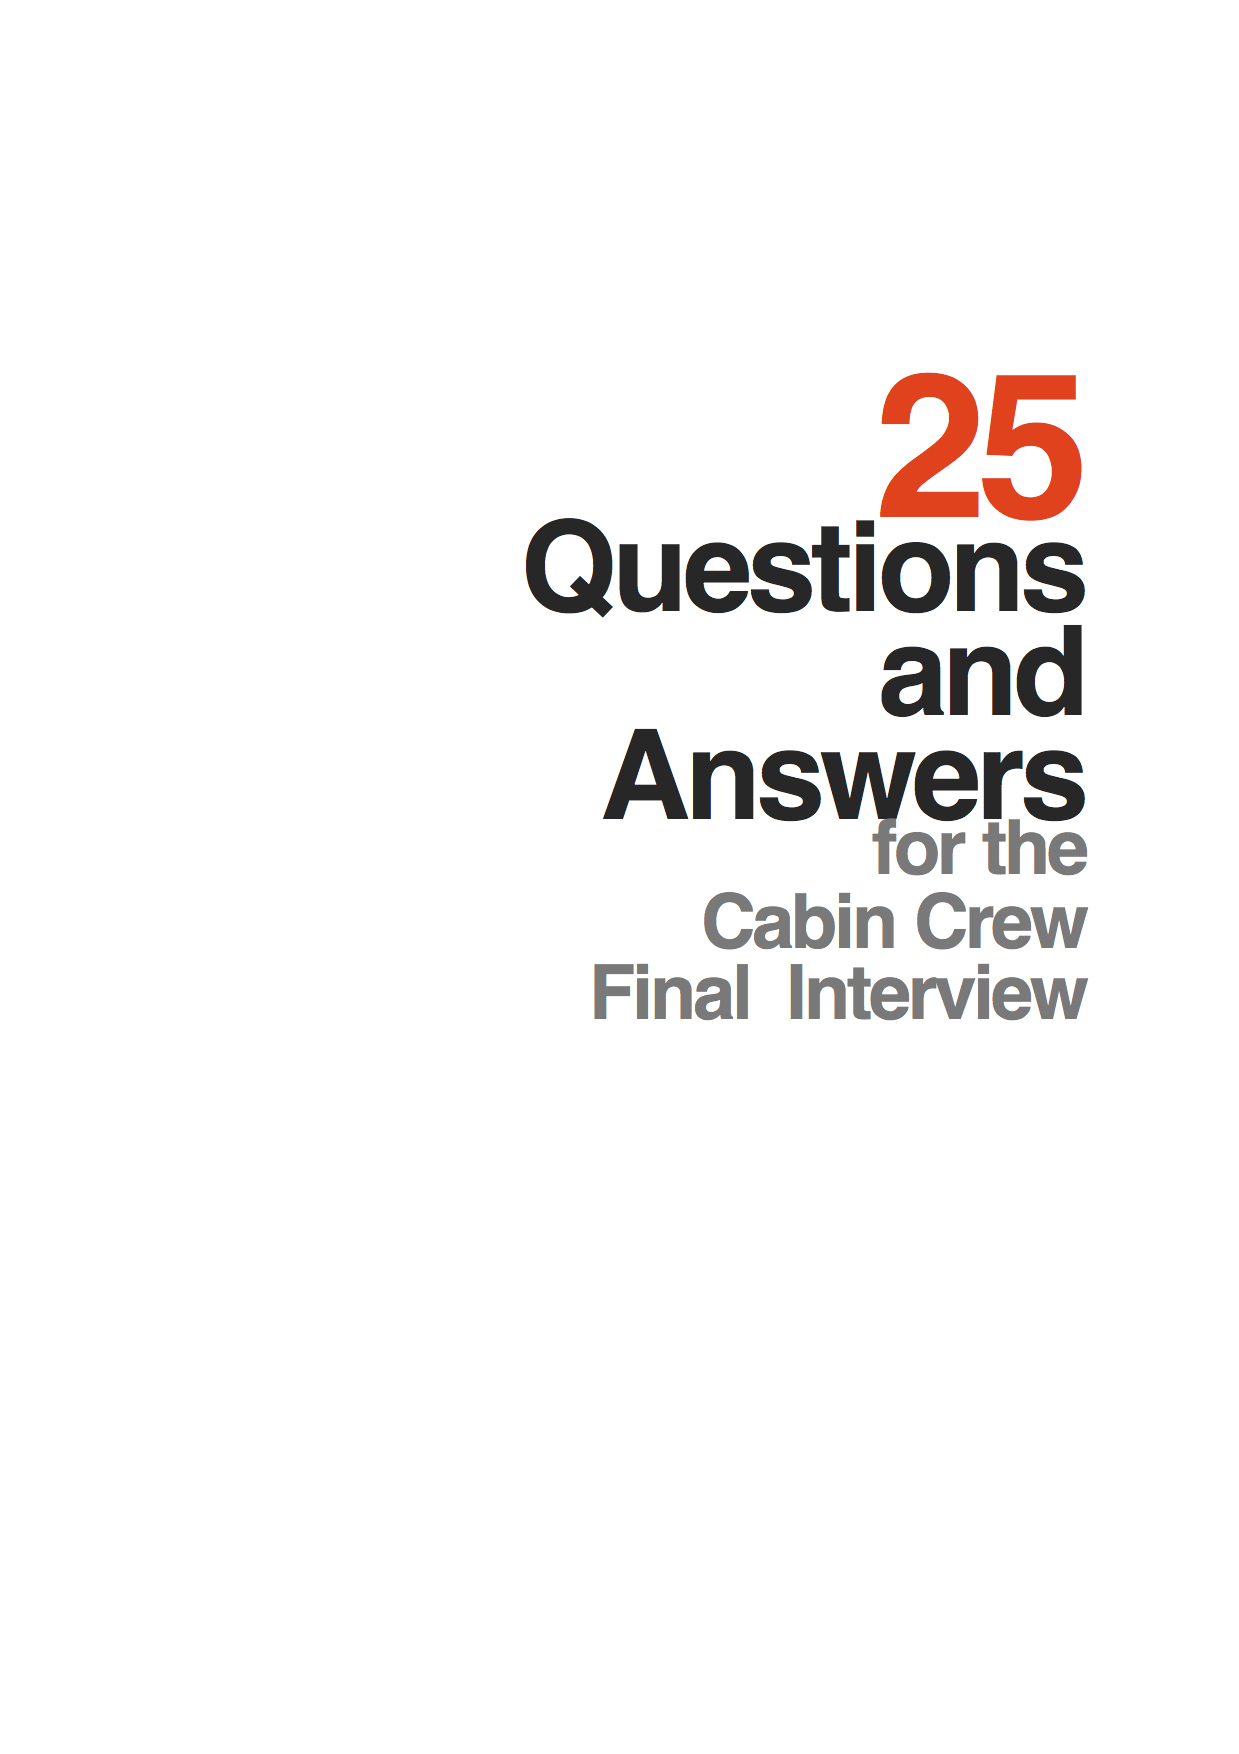 25 Questions and Answers for the Cabin Crew Interview